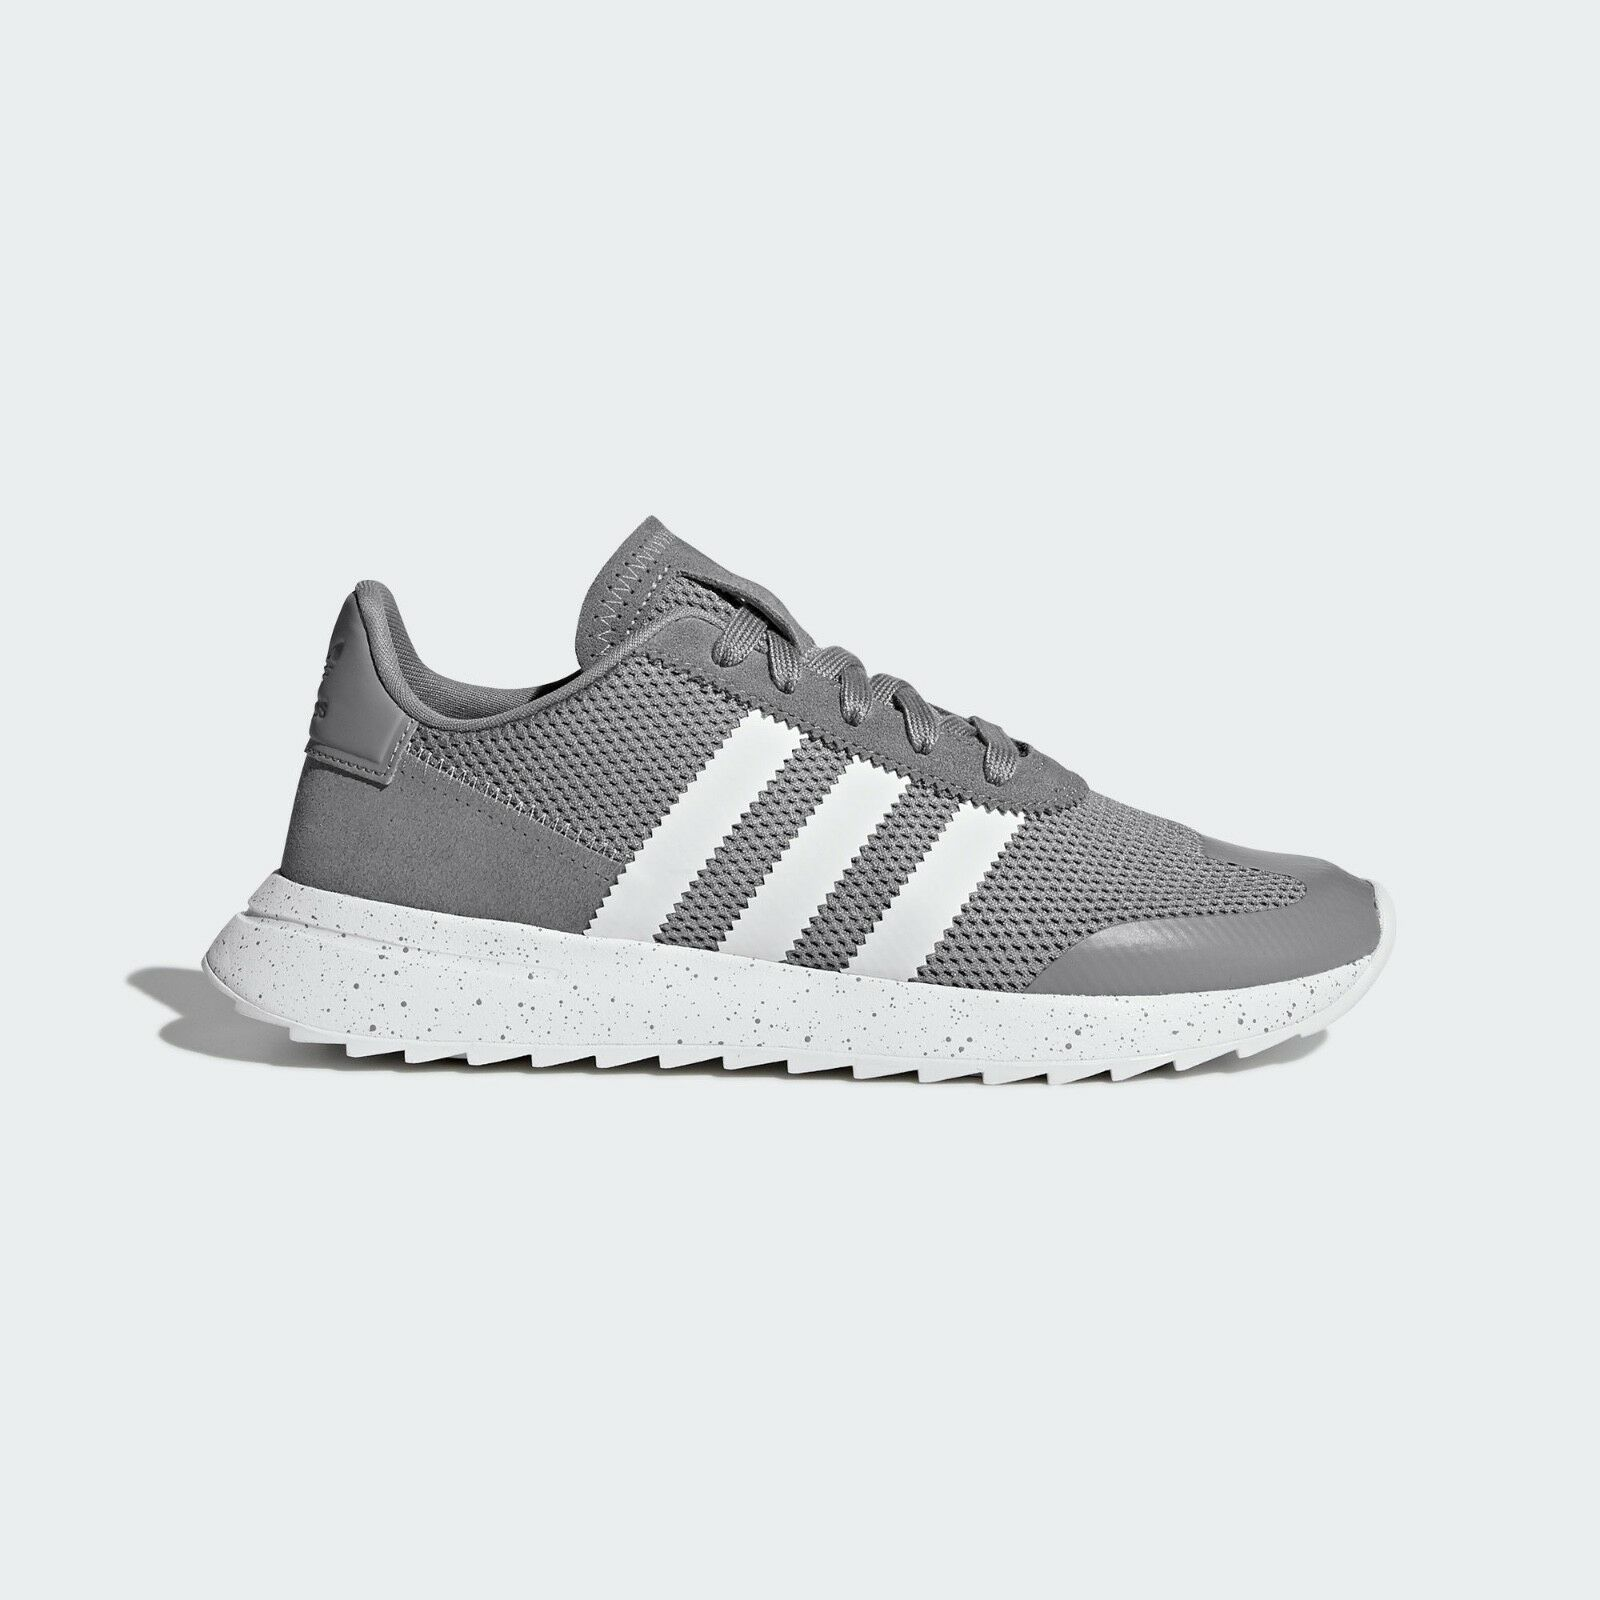 NEW Women's Adidas Flashback Runner Shoes Size: 5.5 Color: Gray